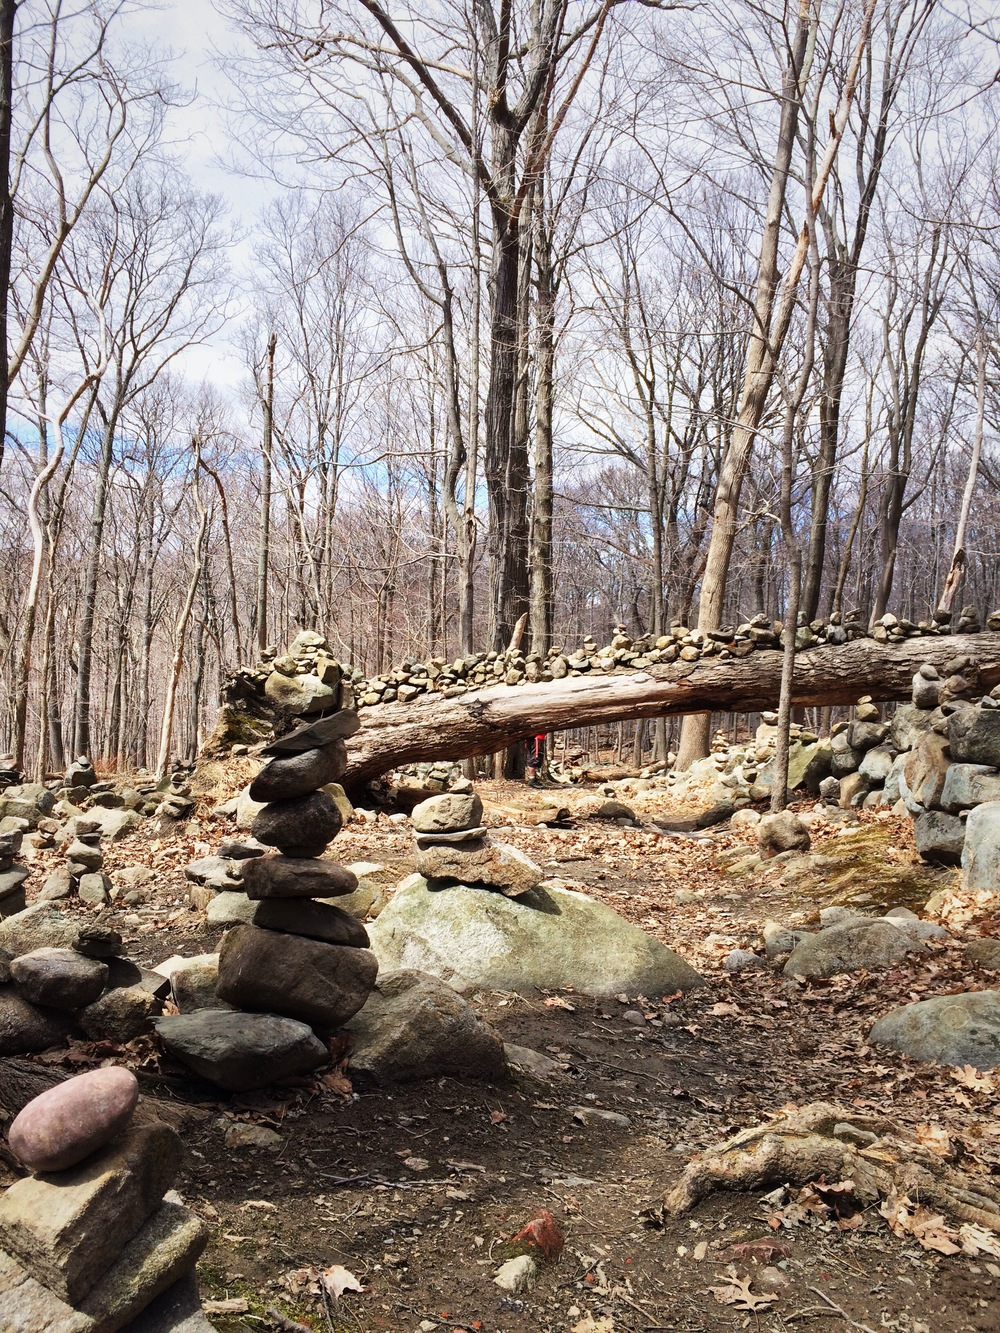 Trailmarkers or Cairns lined up as an art work more than a functional utility along the trail. They do make a pretty picture.